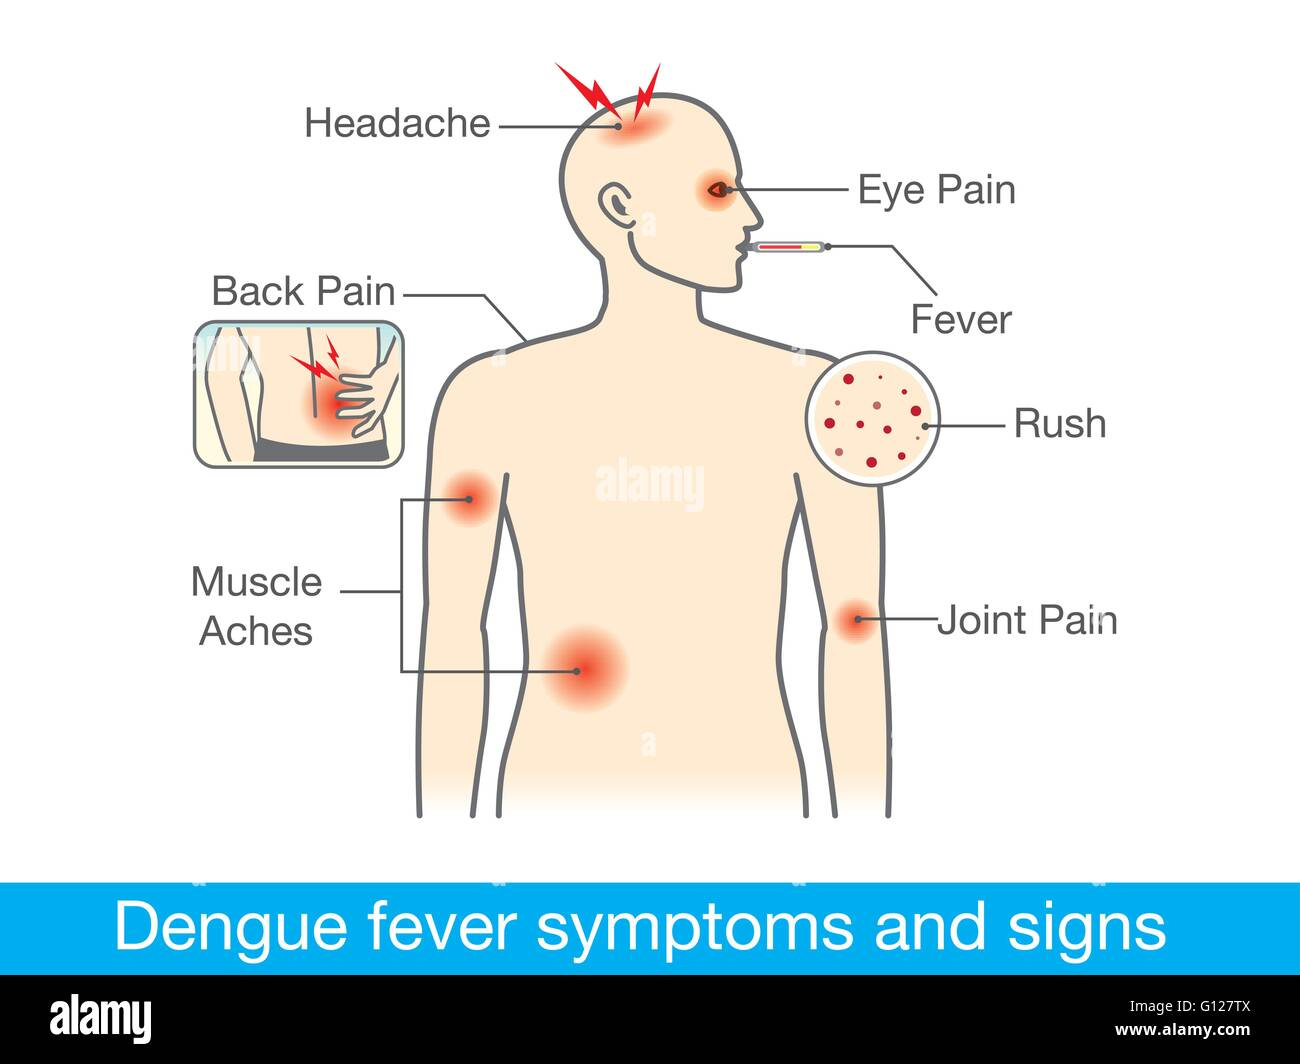 Dengue fever symptoms and signs - Stock Image